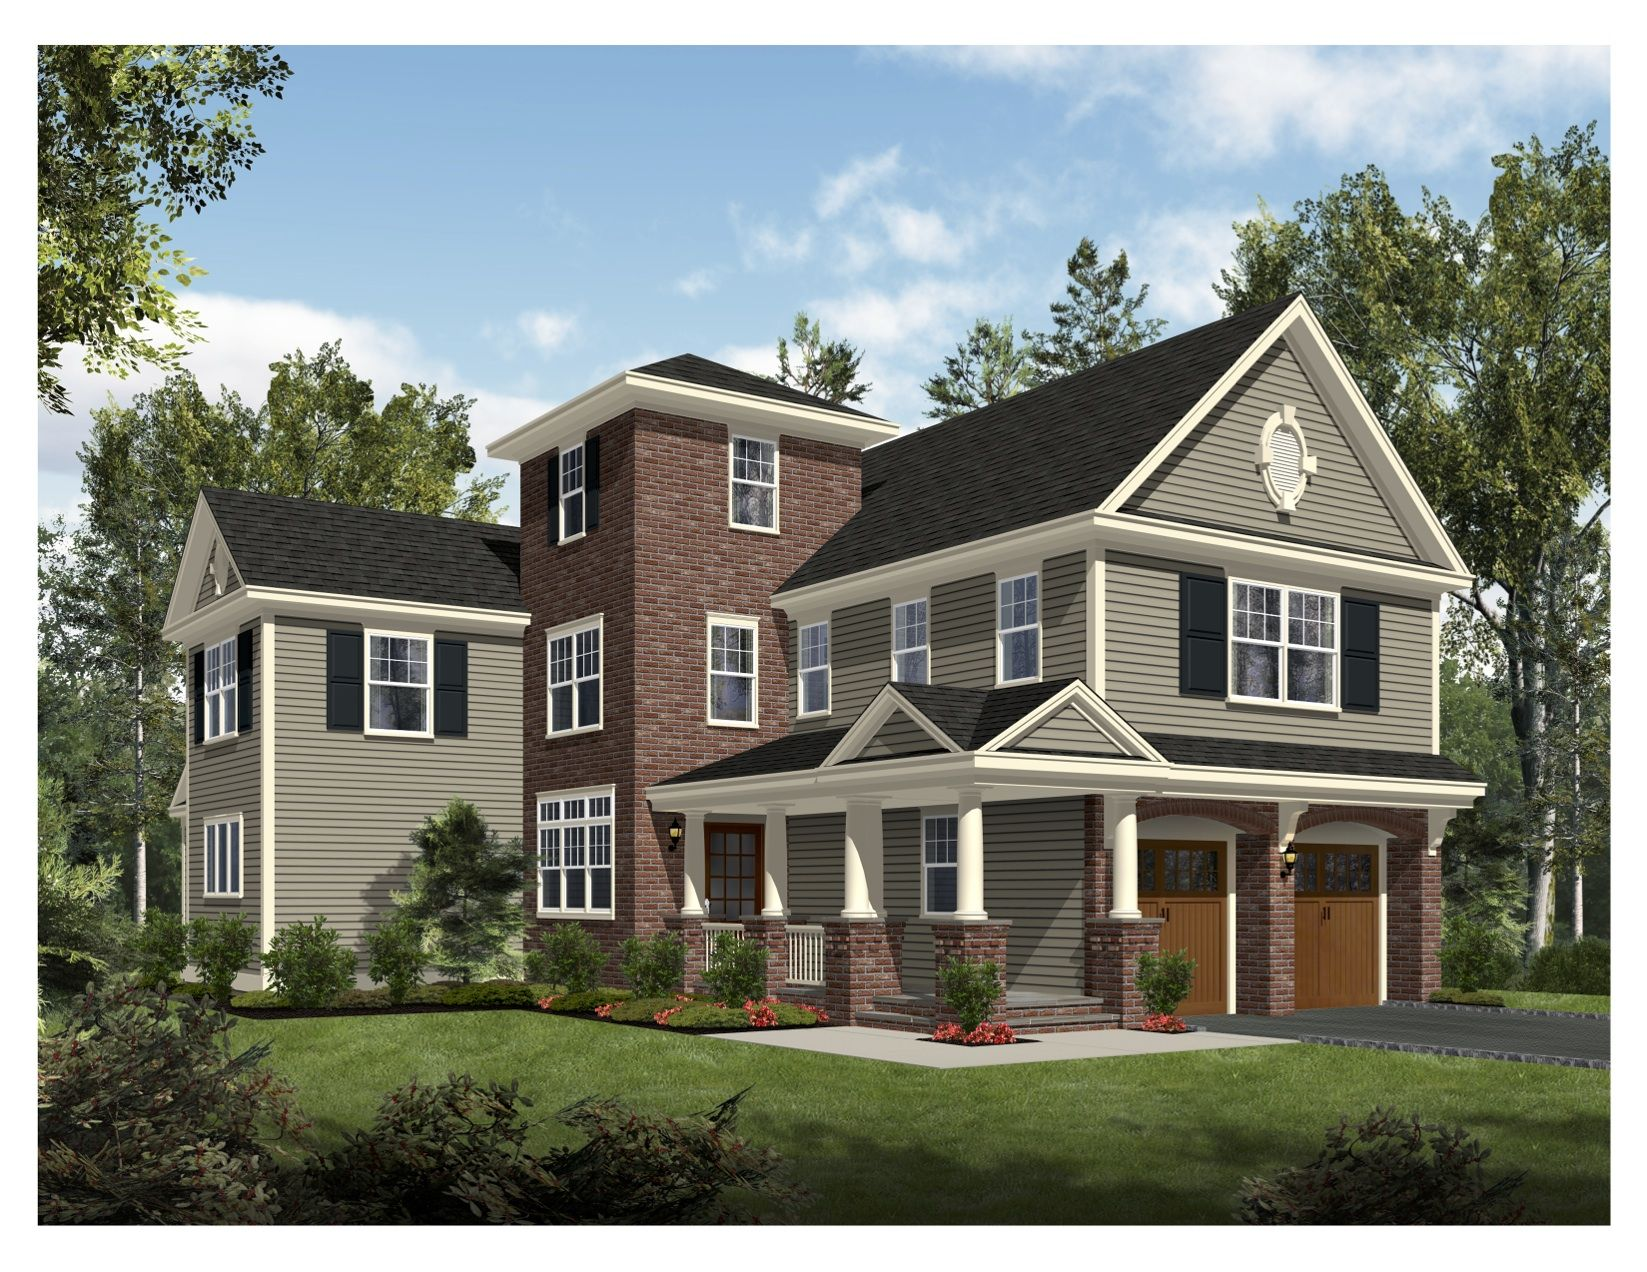 New Construction At 206 Son Drive Westfield Nj 07090 This Beautiful Home Will Be Built On The Edge Of Tamaques Park